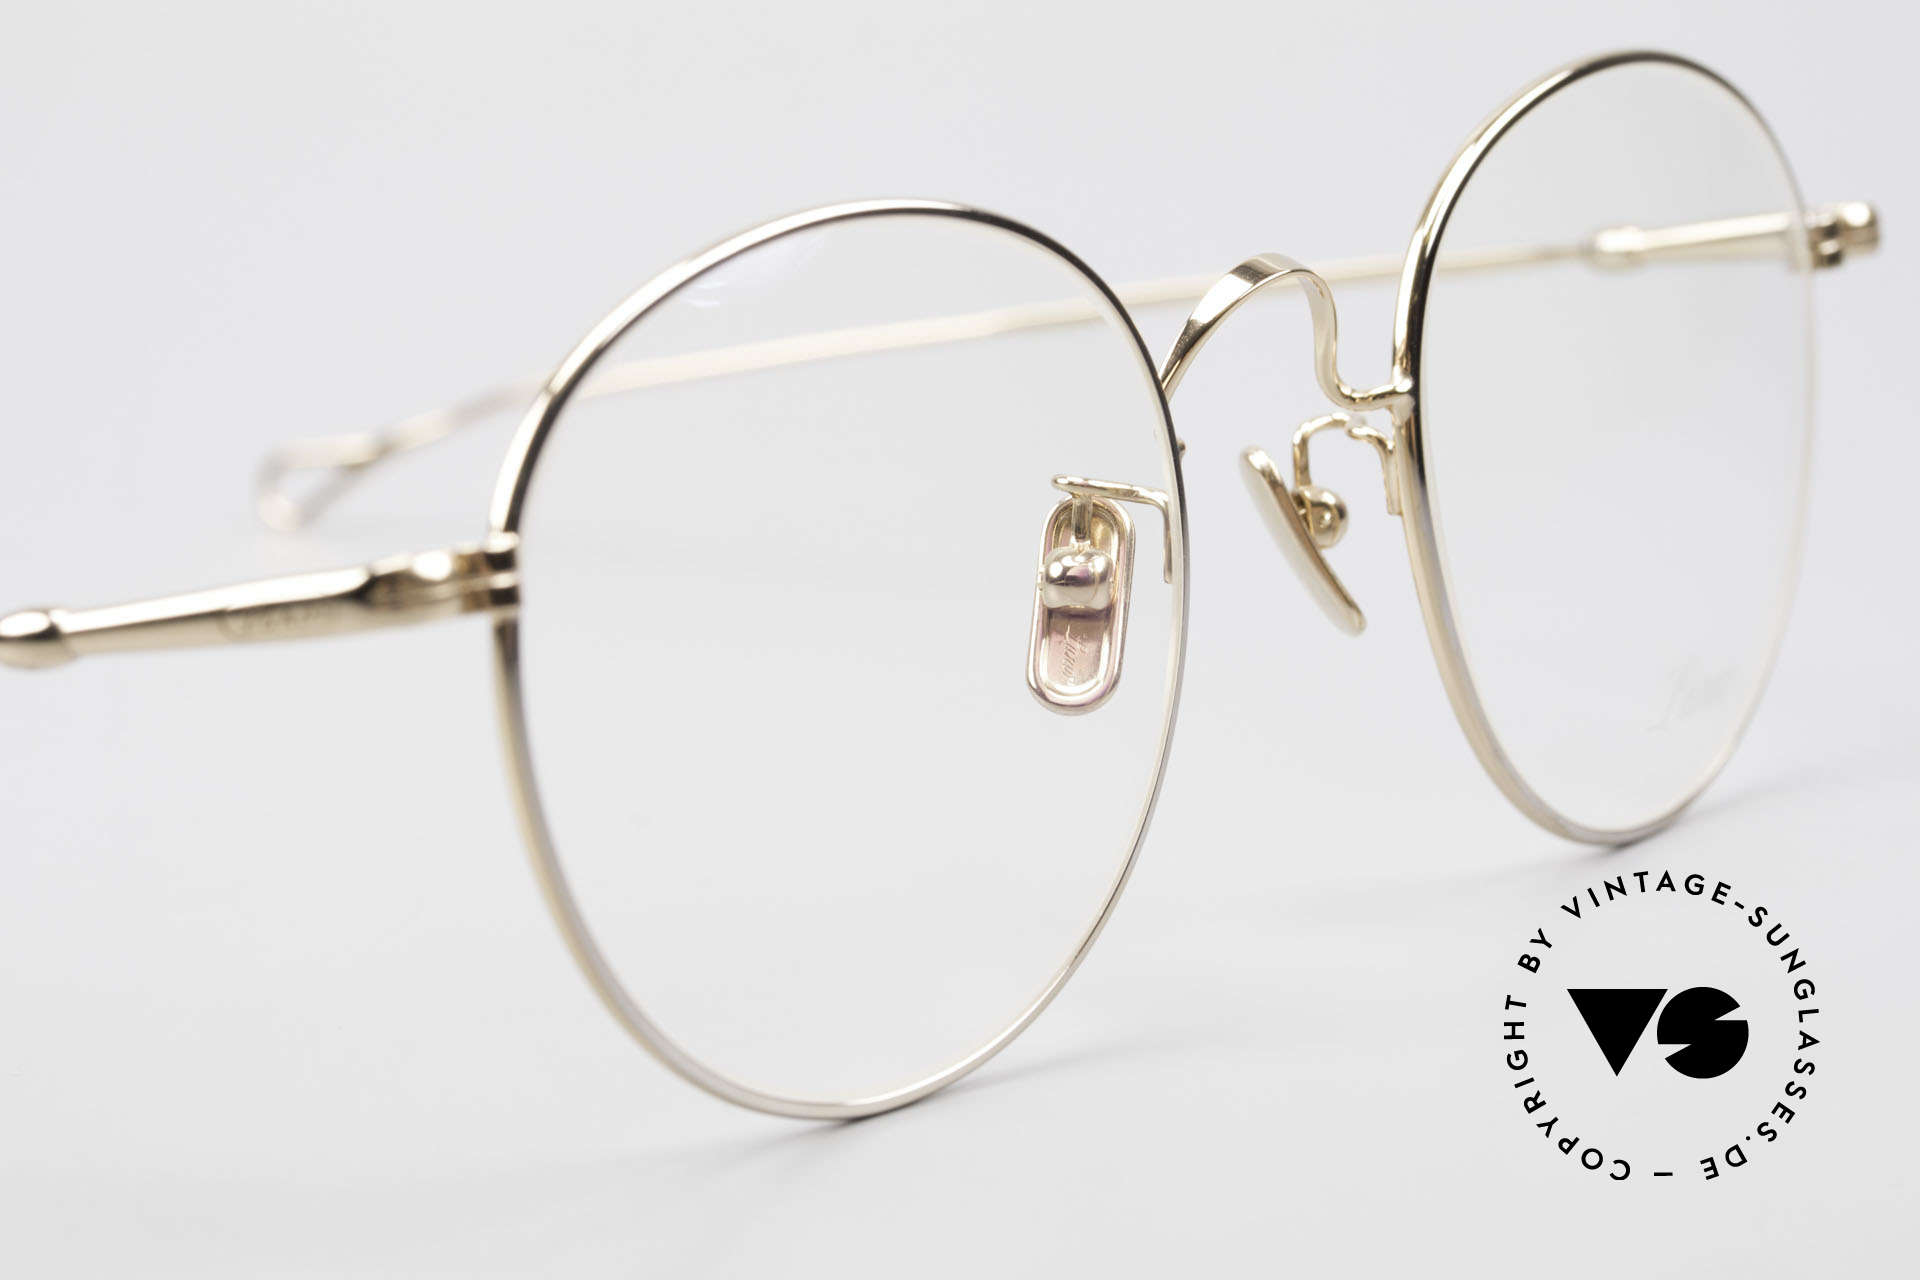 Lunor V 111 Men's Panto Frame Gold Plated, thus, we decided to take it into our vintage collection, Made for Men